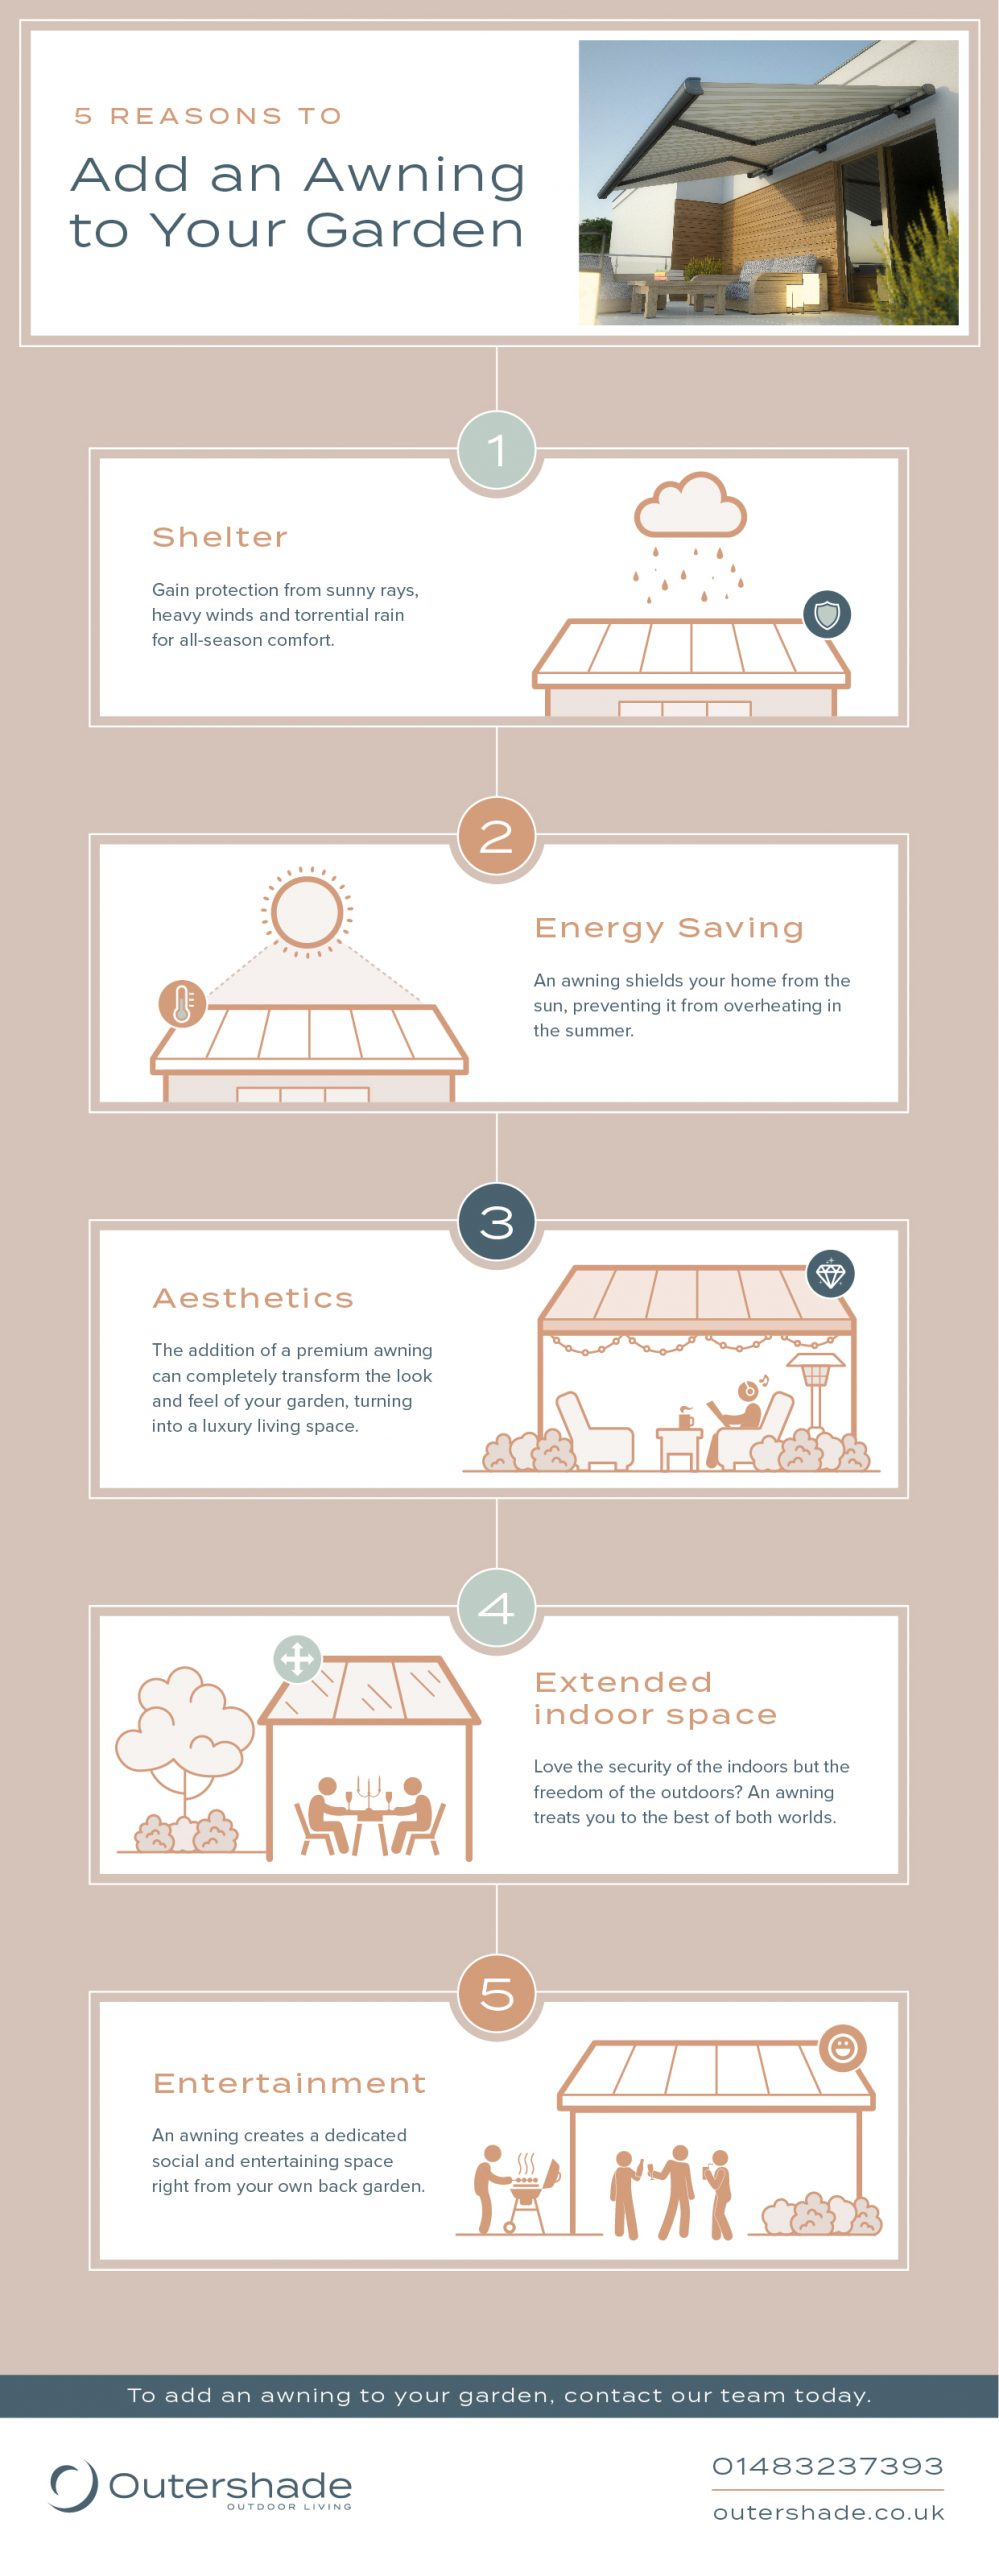 5 Reasons to Add an Awning to Your Garden by Outershade